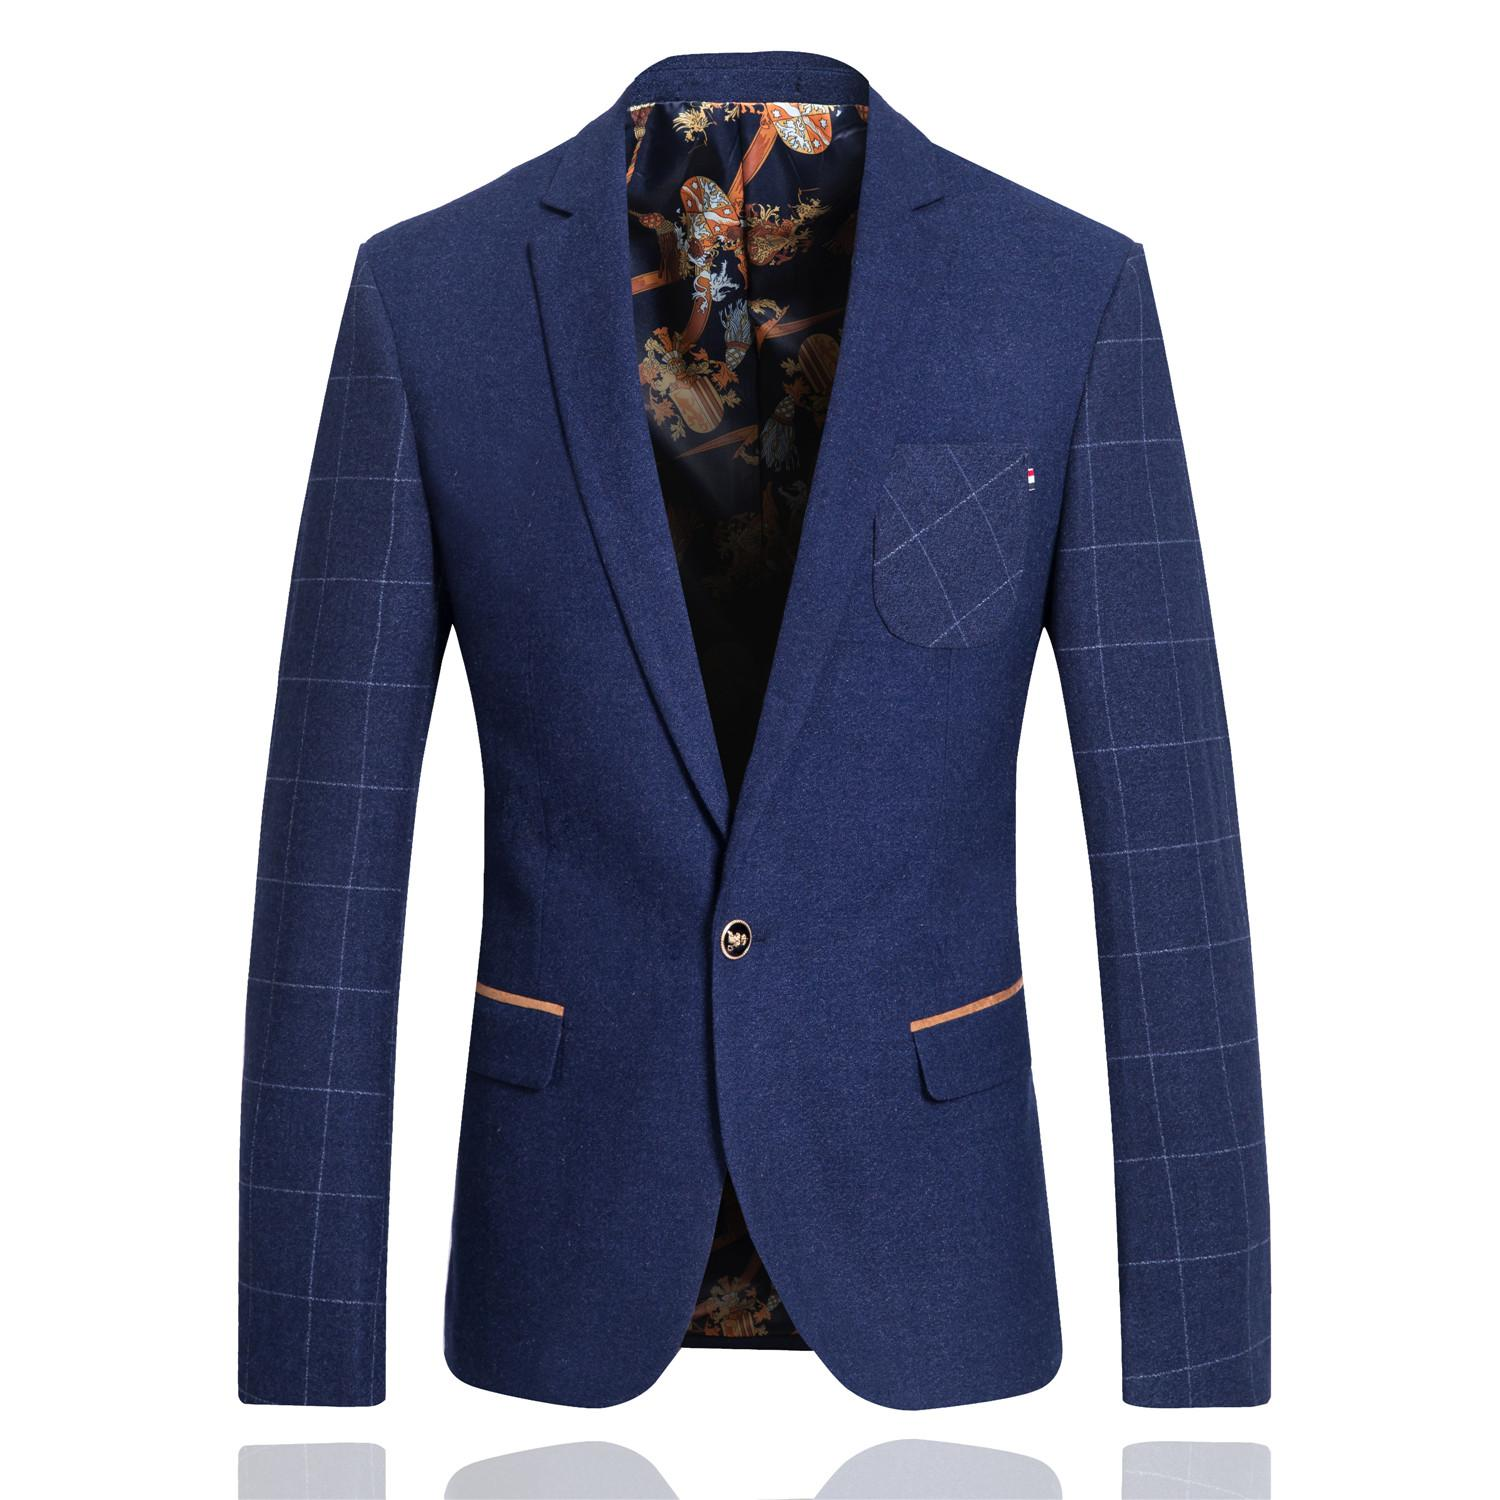 2017 Men'S Suit Jacket Blue Color Blazer Slim Fit Coat Business ...